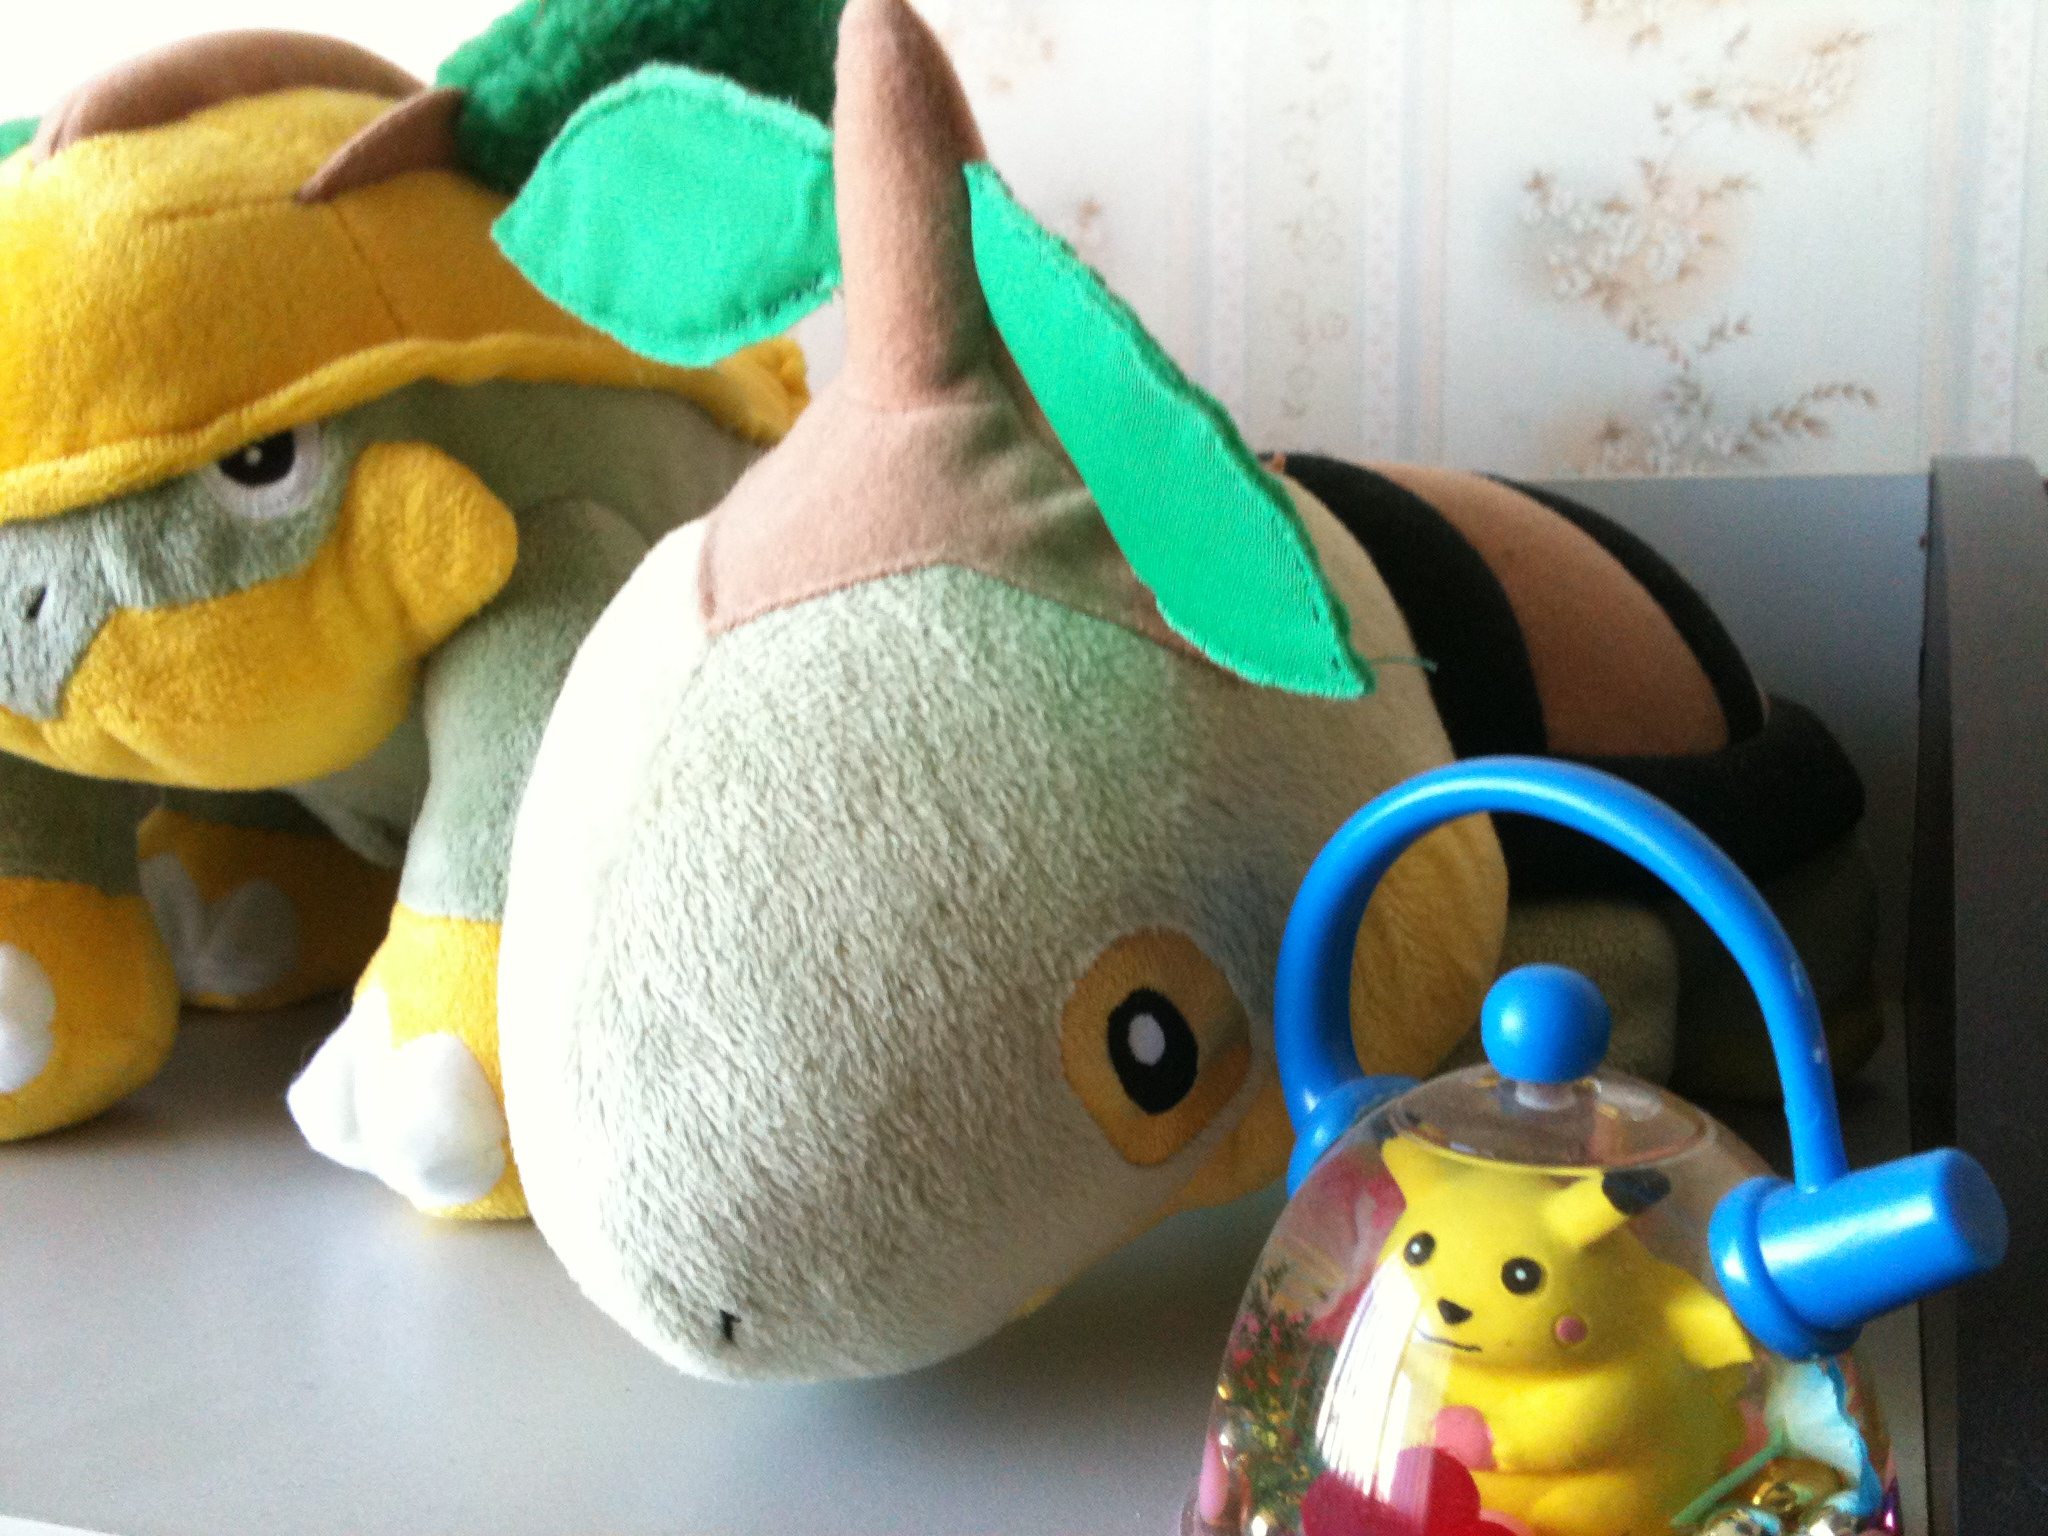 Talking Turtwig plush